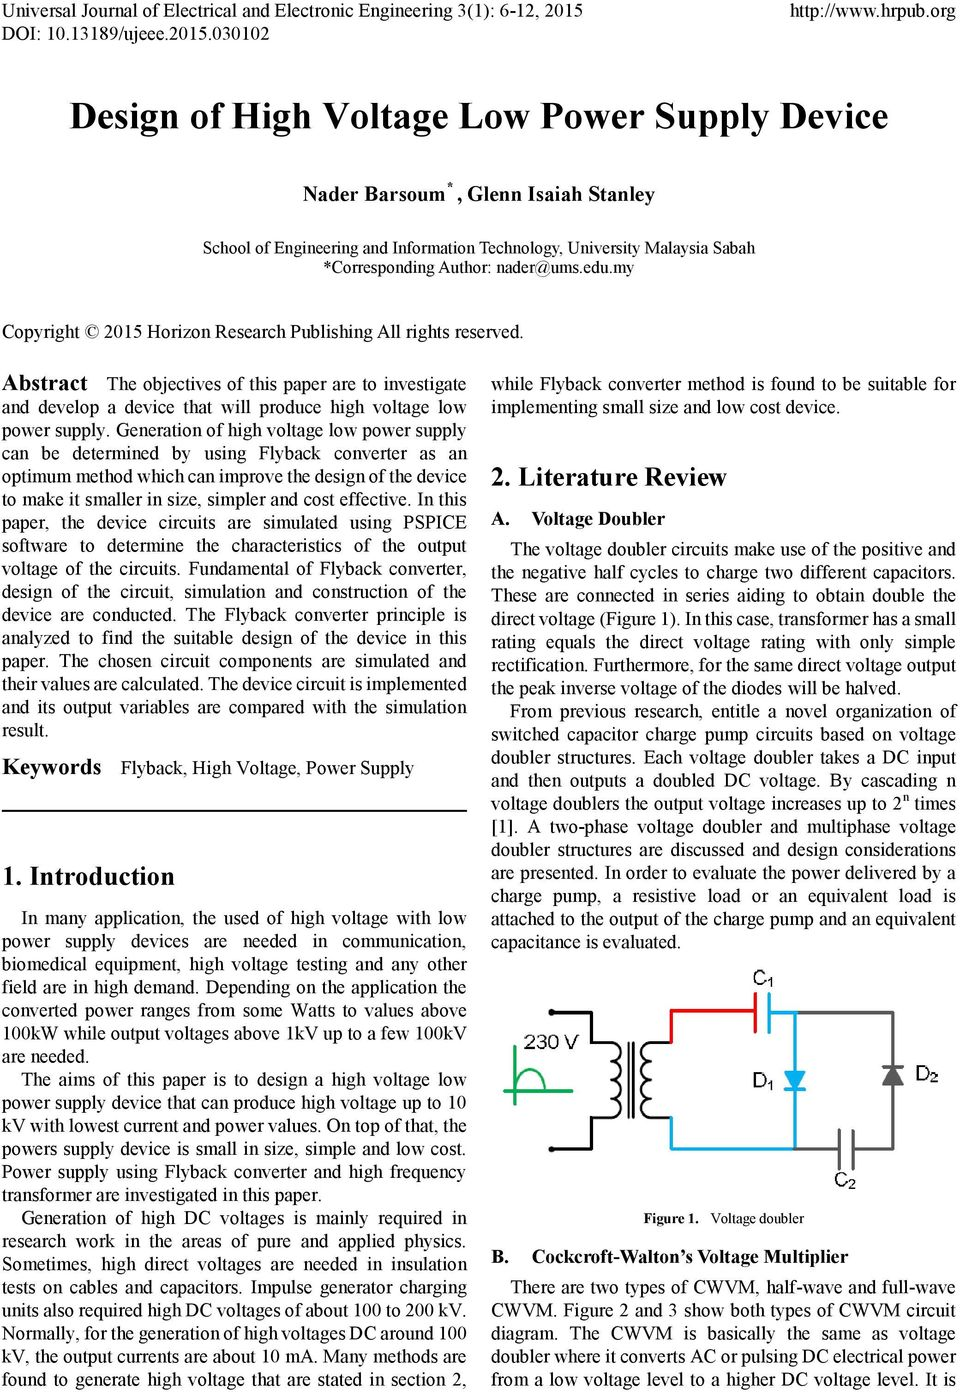 Design Of High Voltage Low Power Supply Device Pdf Comparison Between Half Wave And Full Doublers Edumy Copyright 2015 Horizon Research Publishing All Rights Reserved Abstract The Objectives